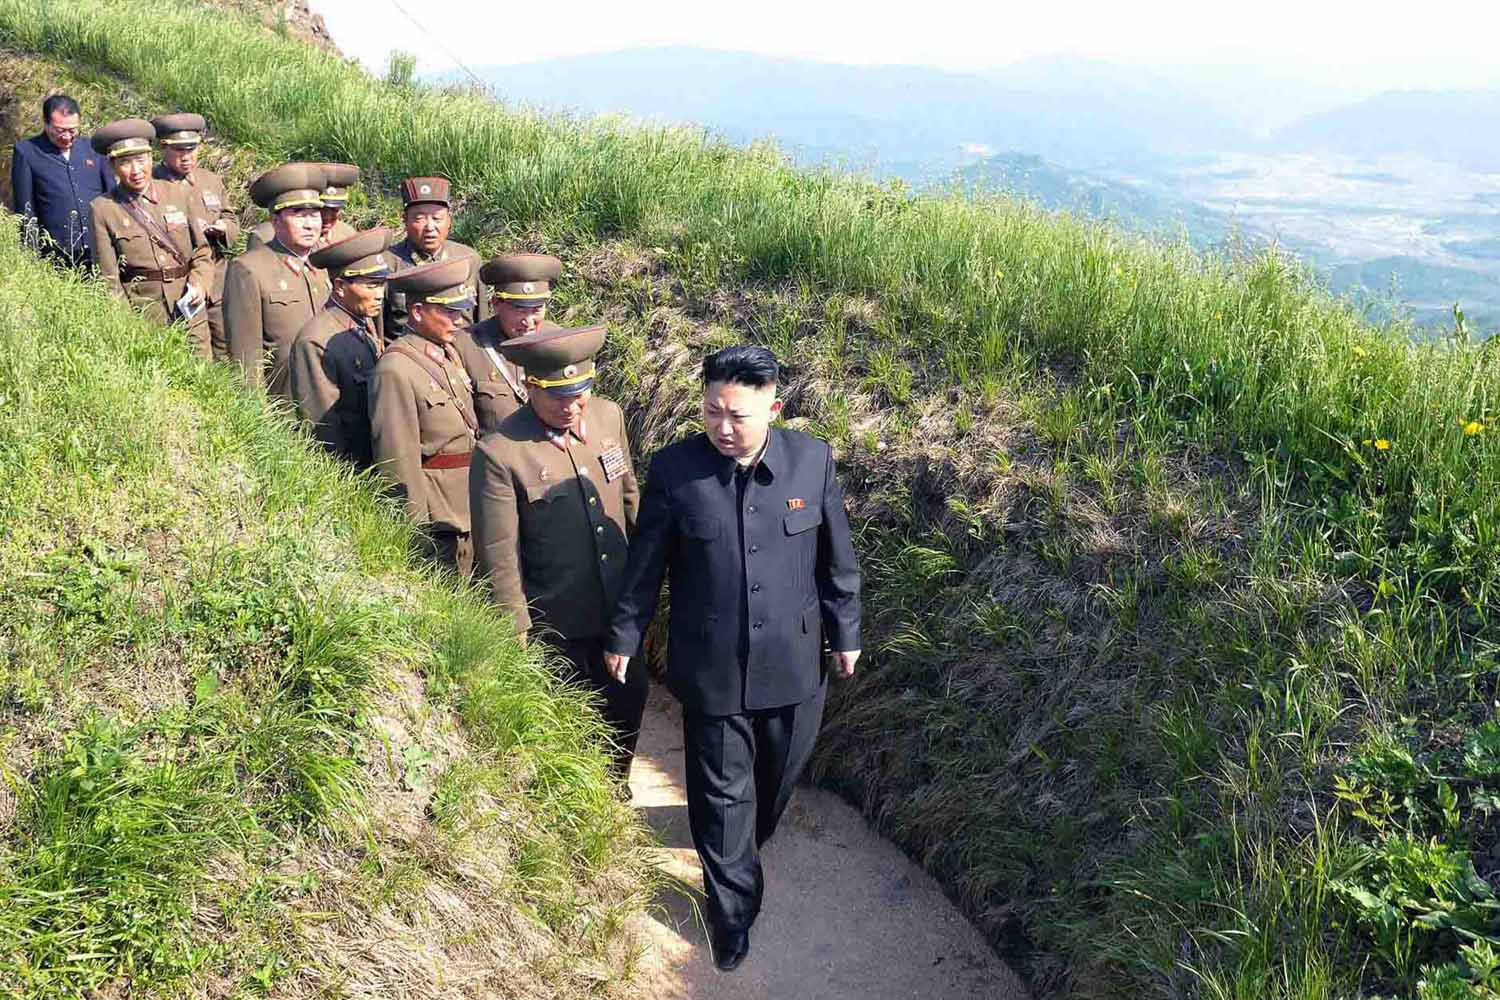 June 2, 2013. North Korean leader Kim Jong-Un (R) inspects  watch posts defending Mt. Osong and Korean People's Army (KPA) unit 507 in the Kangwon province of North Korea.